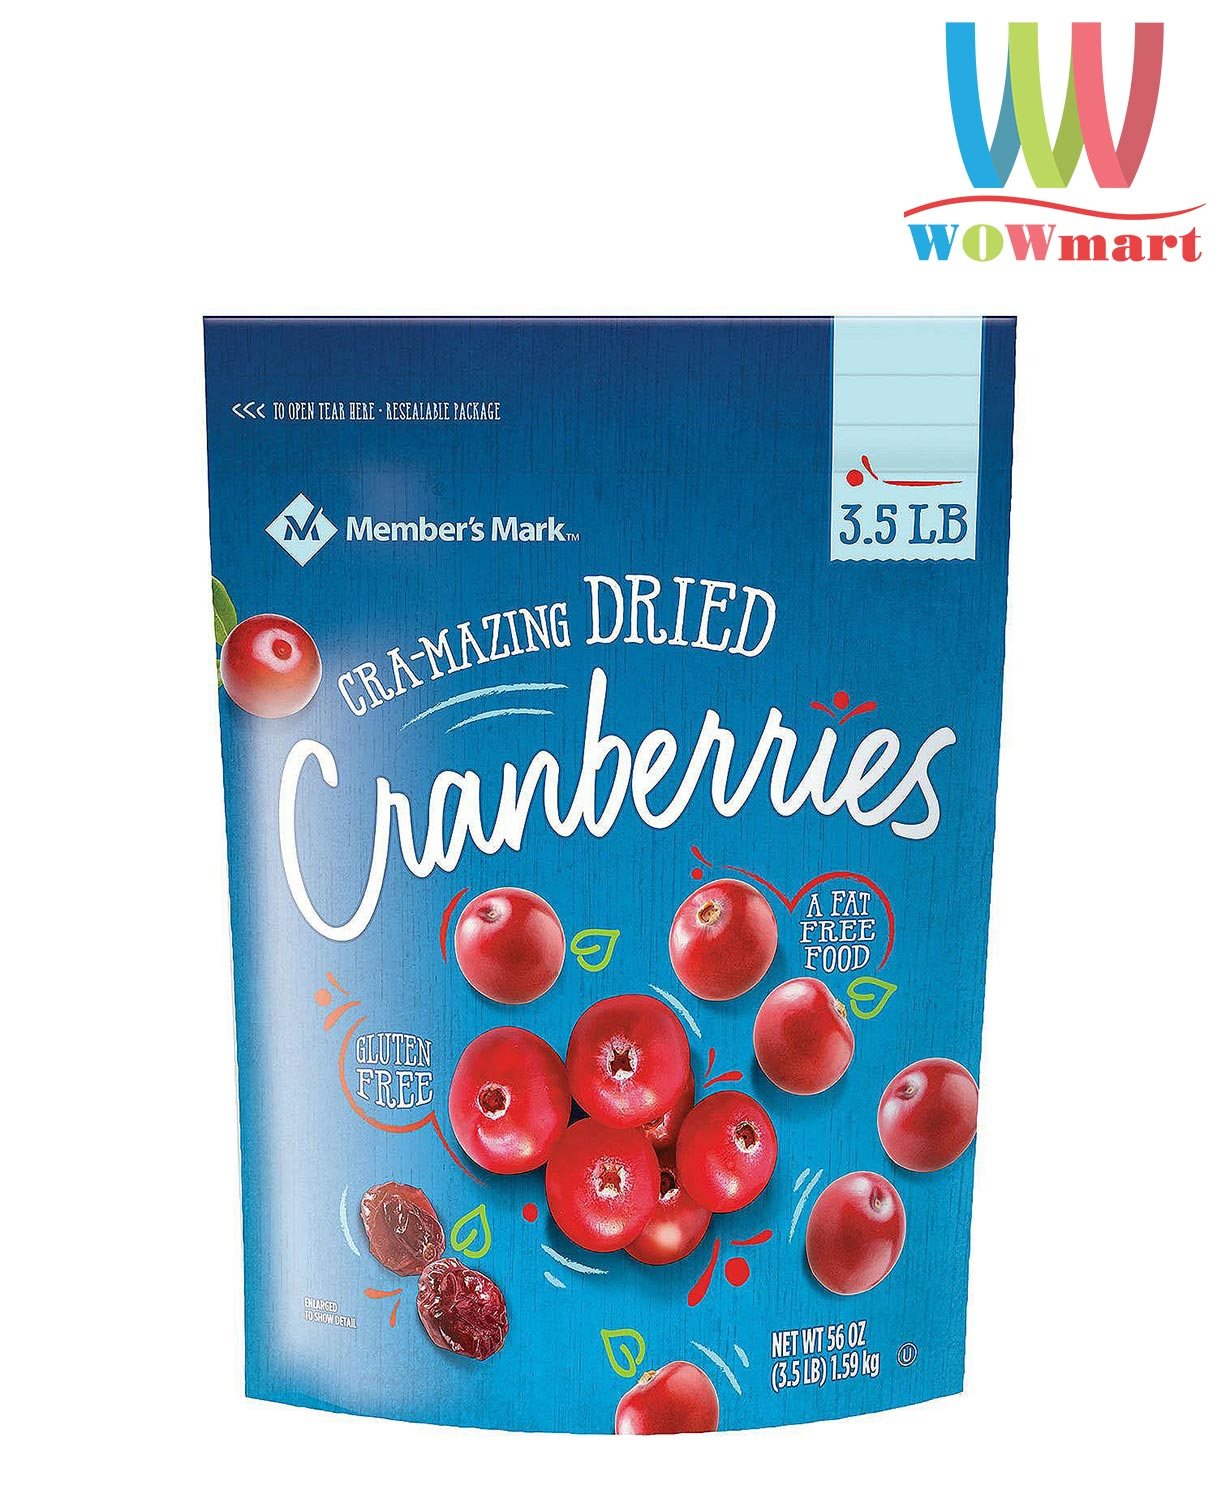 bich-nam-viet-quat-say-kho-members-mark-cranberries-159kg